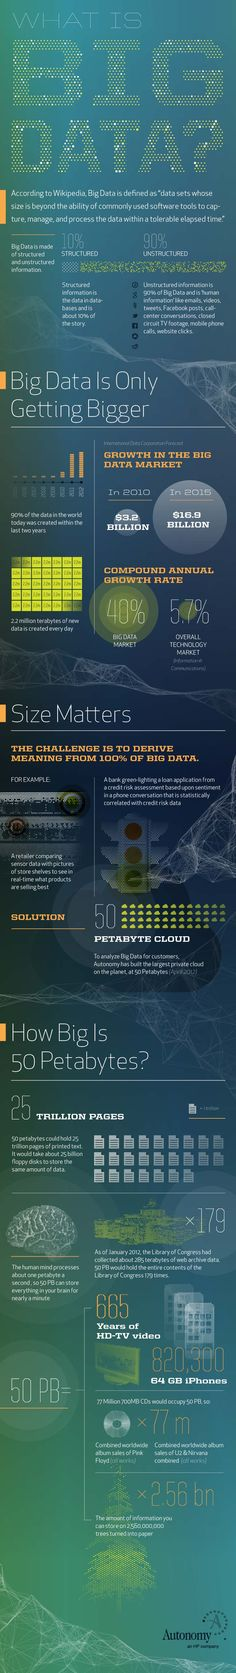 What is Big Data? #bigdata